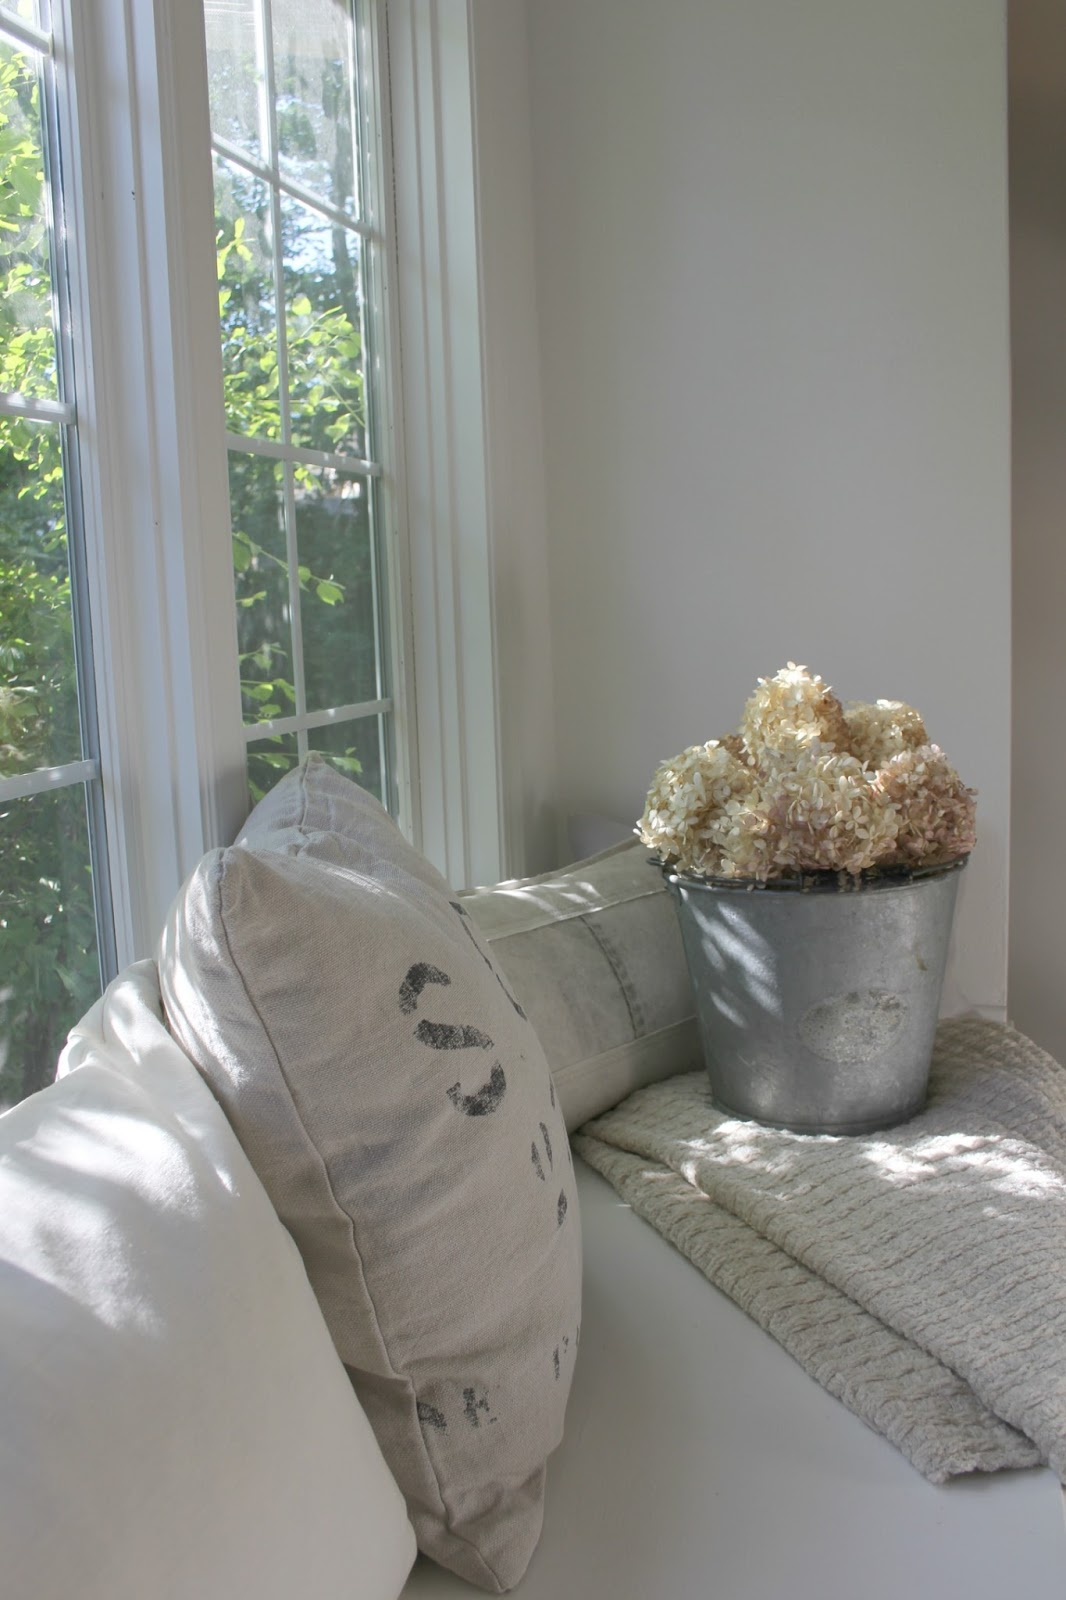 Window seat in breakfast room of kitchen. Belgian linen piillows and vintage galvanized pail holding dried hydrangea. Paint color is Bejamin Moore WHITE. Come explore How to Decorate a Room Without Breaking the Bank: Low Cost Design Reminders.